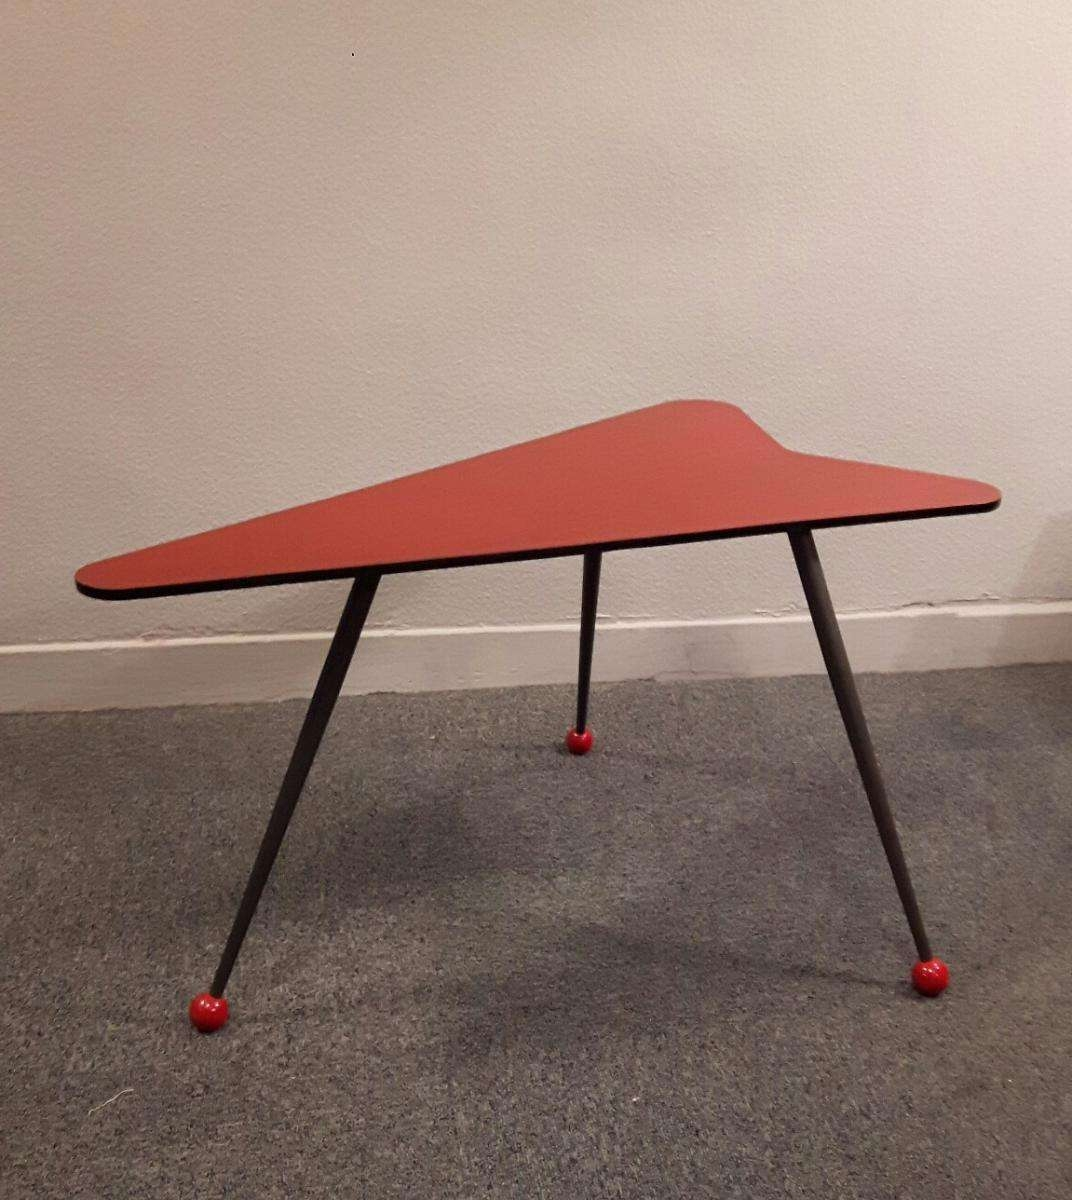 Most Recently Released Free Form Coffee Tables Intended For Mid Century Free Form Coffee Table, 1950s For Sale At Pamono (View 18 of 20)